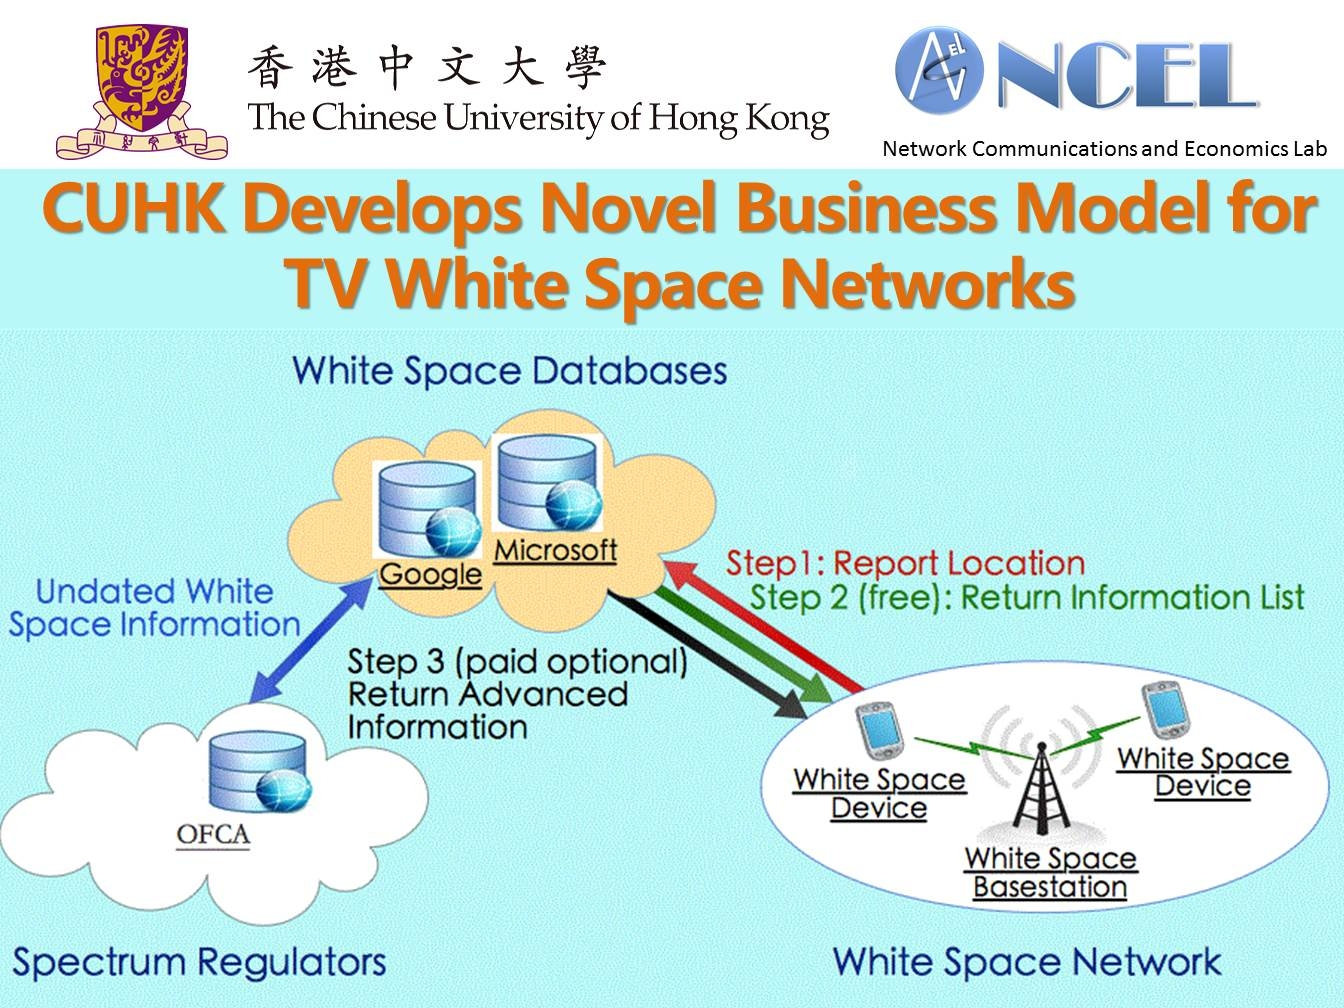 The information market model for TV white space networks.